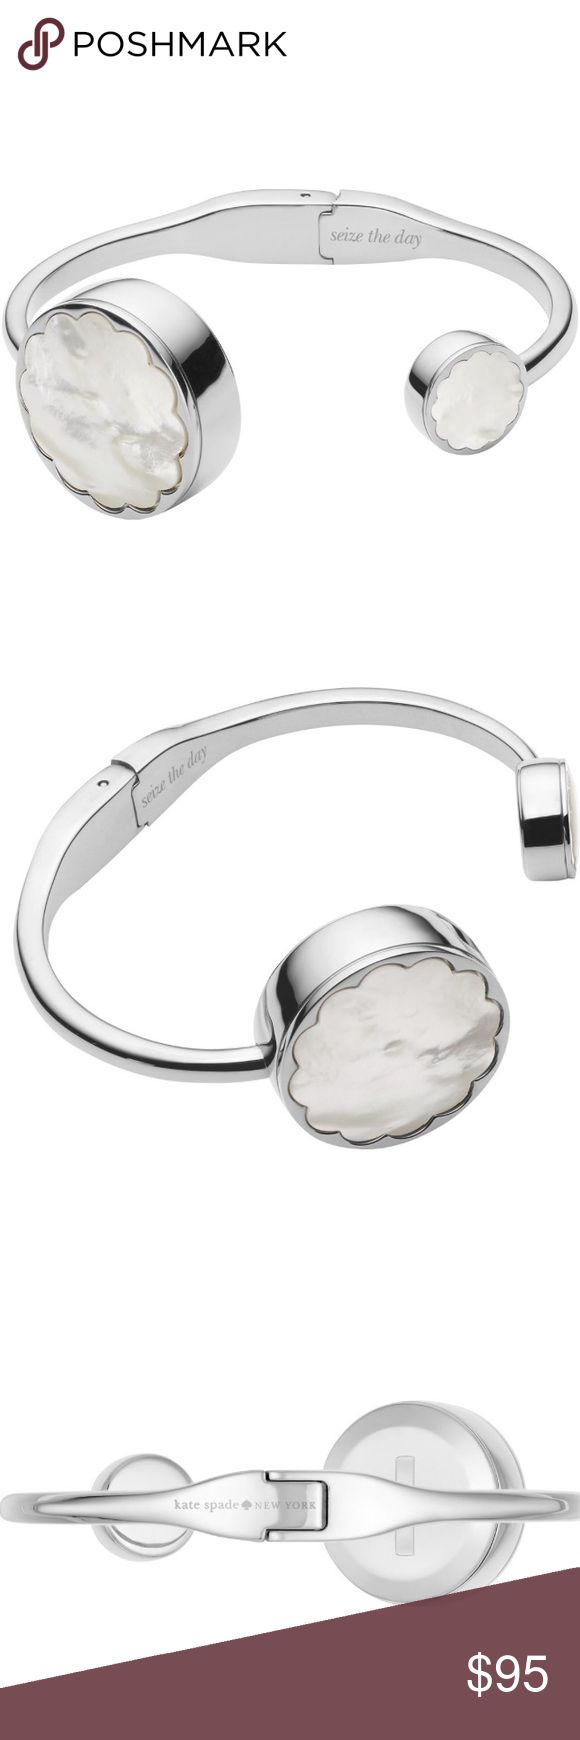 ♠️NWB♠️ Kate Spade Bangle Activity Tracker Measures calories burned To help you monitor multiple fitness activities.  Keep track of daily activity levels Measures distance and steps taken.  Comprehensive monitoring Tracks sleep activity.  Syncs to select Apple® and Android devices Such as iPhone®, iPad®, iPod® touch and cell phones and tablets with Android 4.4 (KitKat) or later for simple wireless communication.  ✅Listed product is authentic. ✅Comes brand new and sealed in a box. ✅Never…